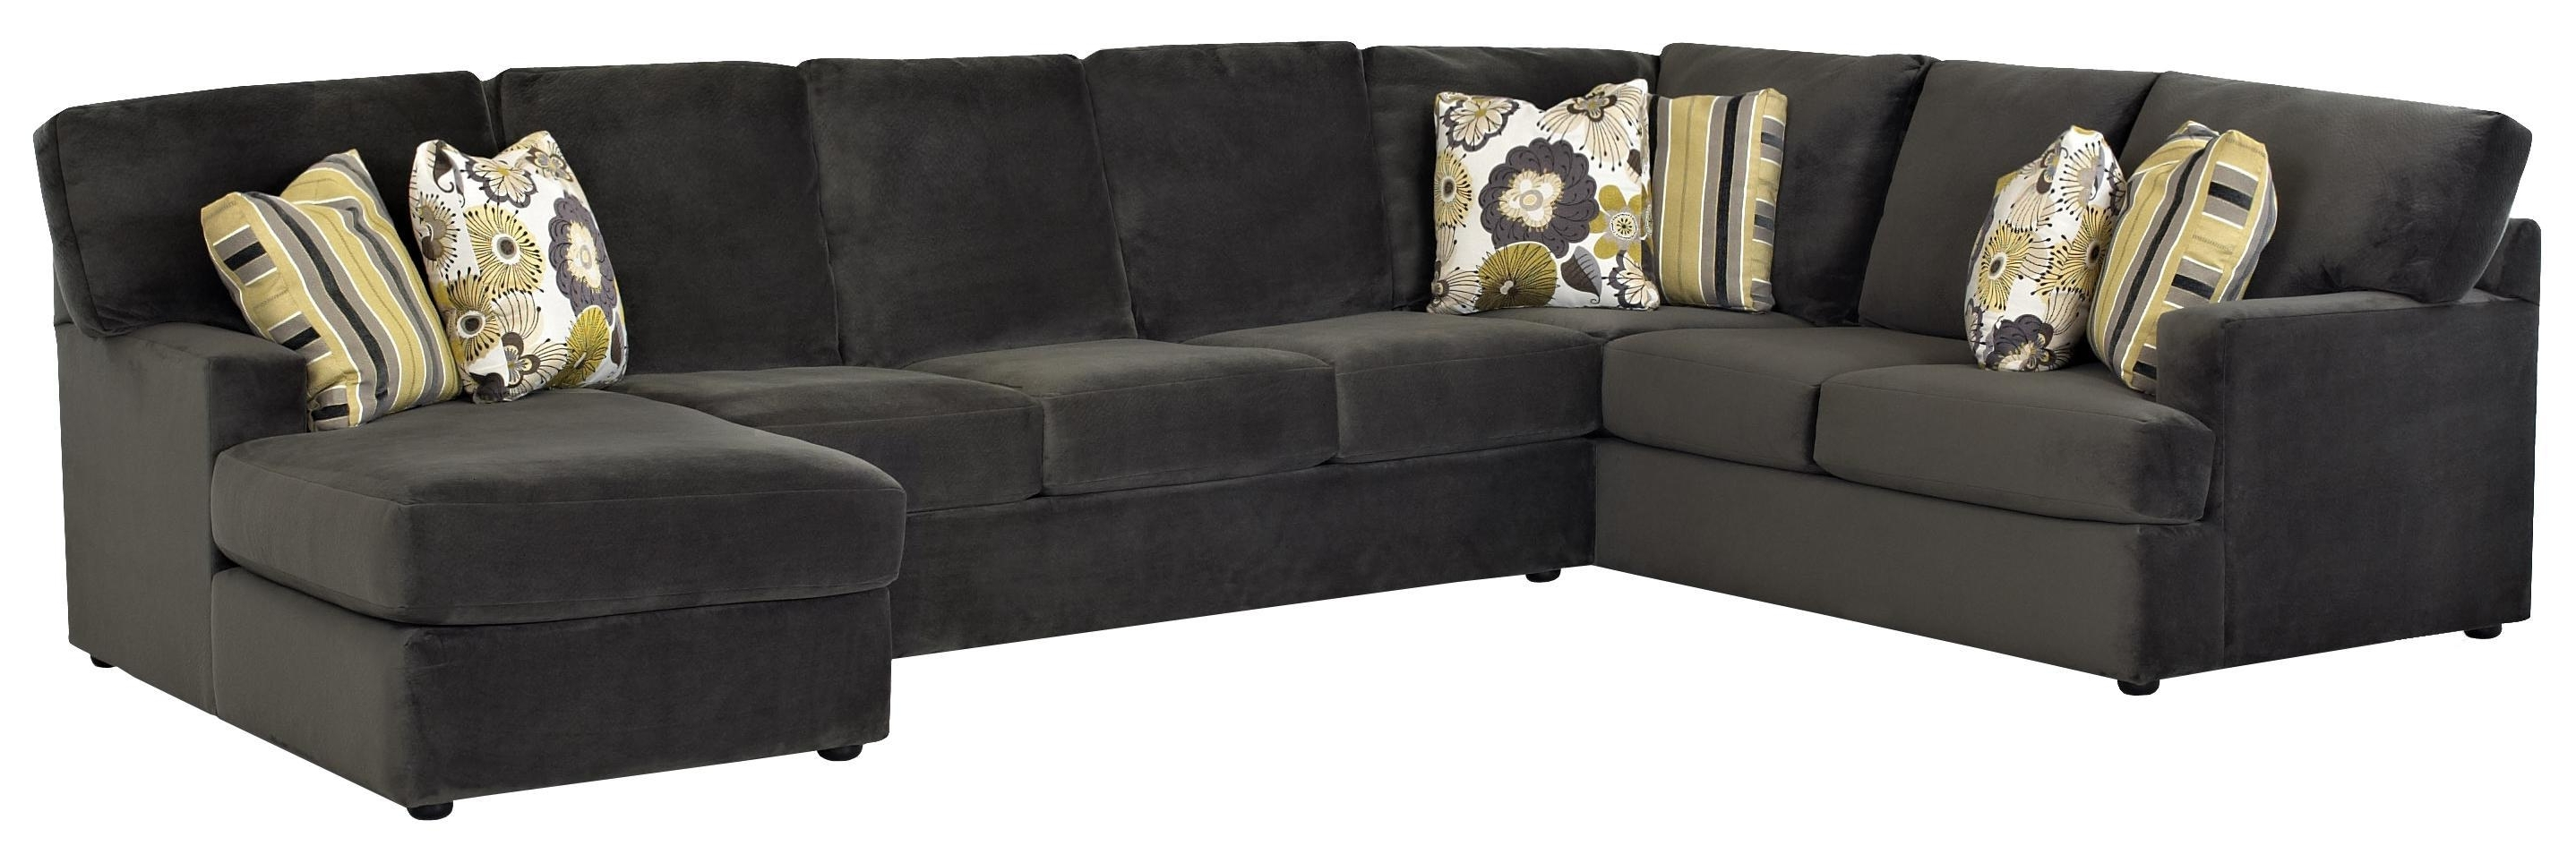 Virginia Beach Sectional Sofas For Best And Newest Stunning The Dump Furniture Sectional Sofa For Home Pic Haynes (Gallery 7 of 20)